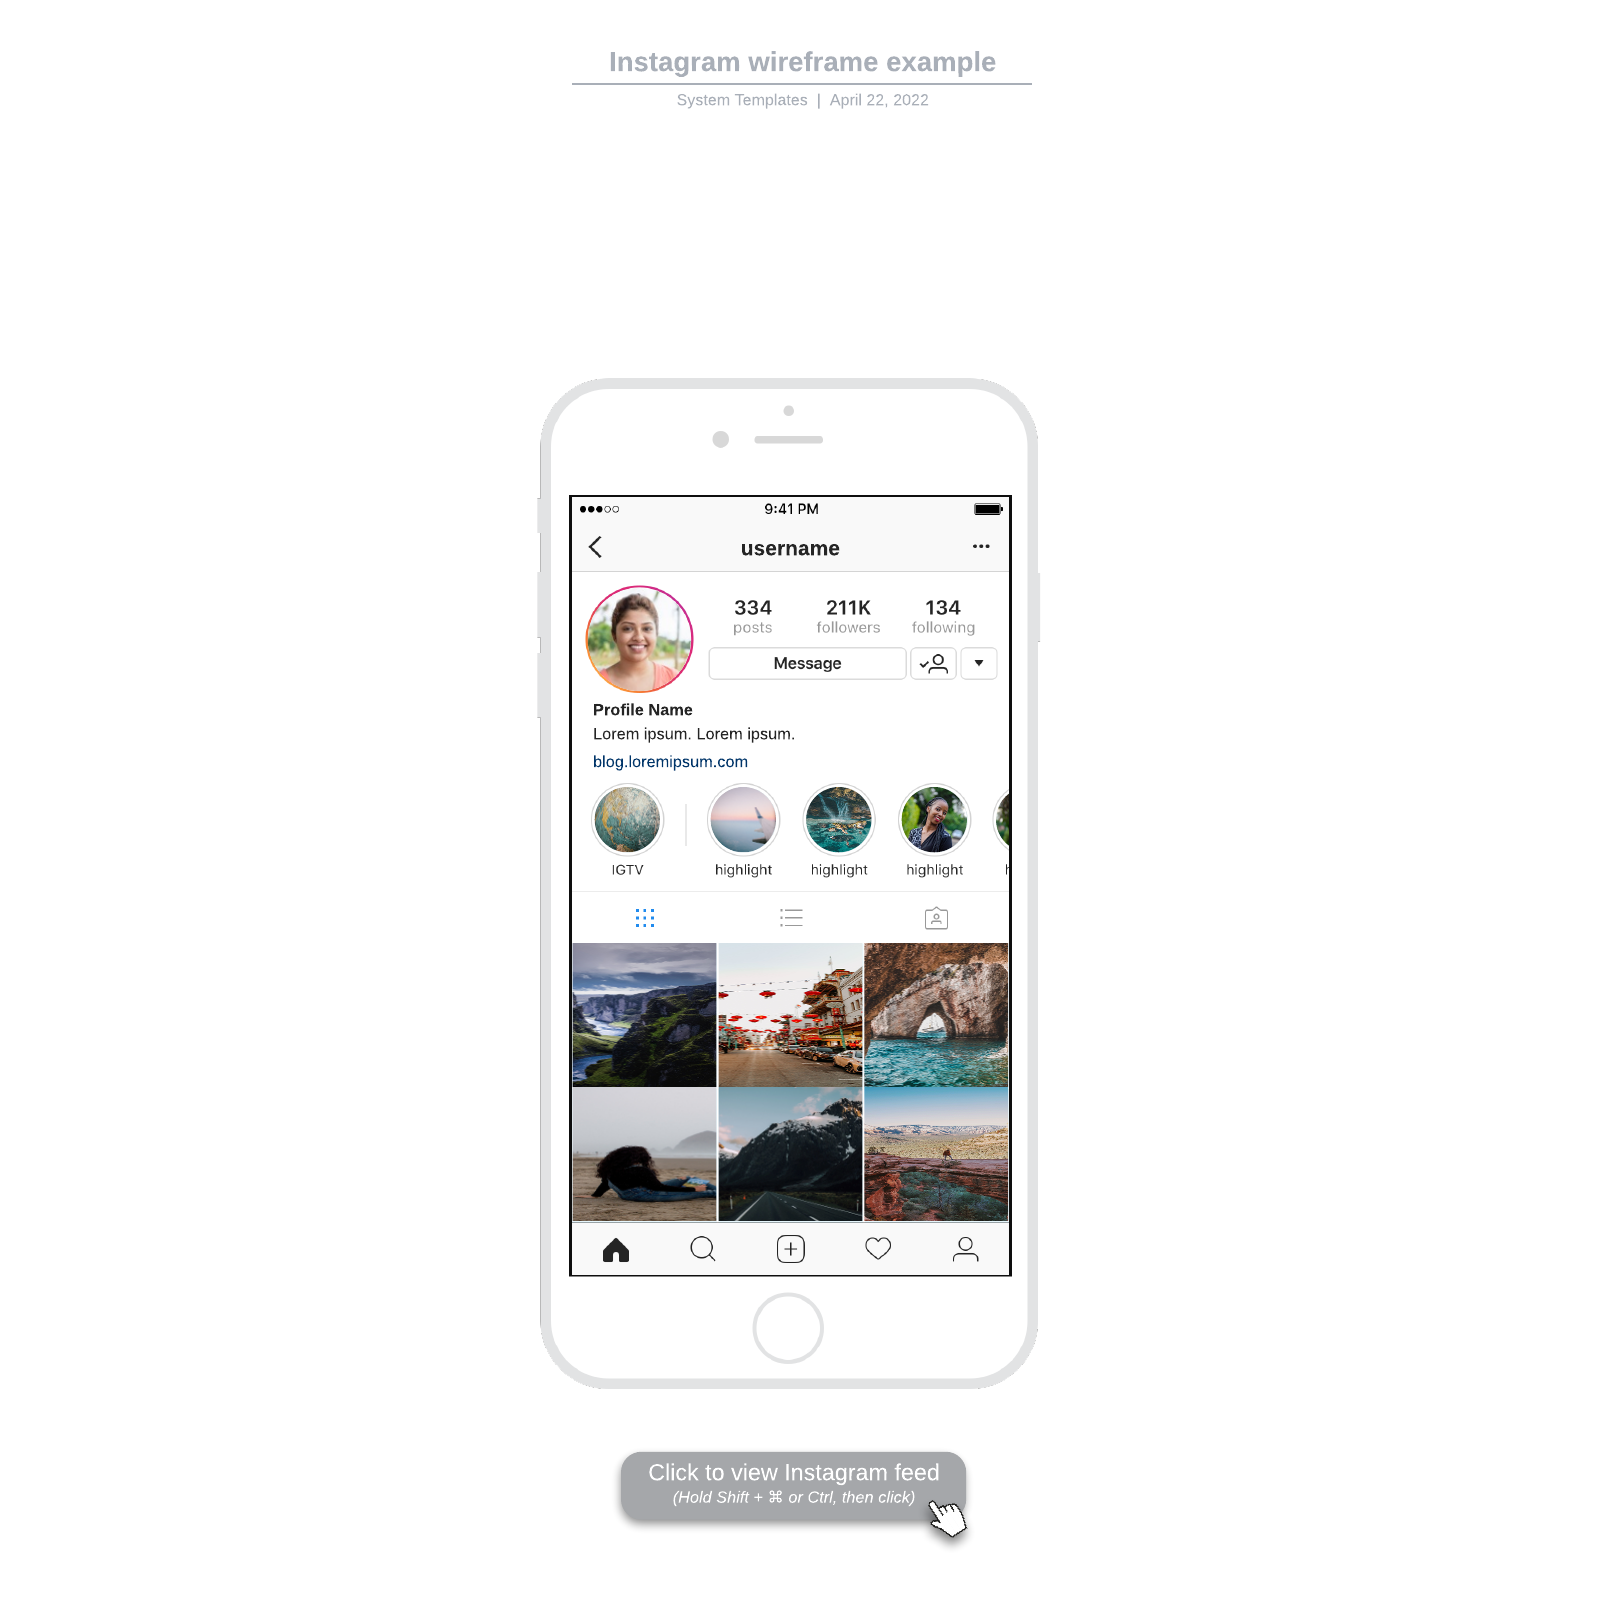 Instagram wireframe example